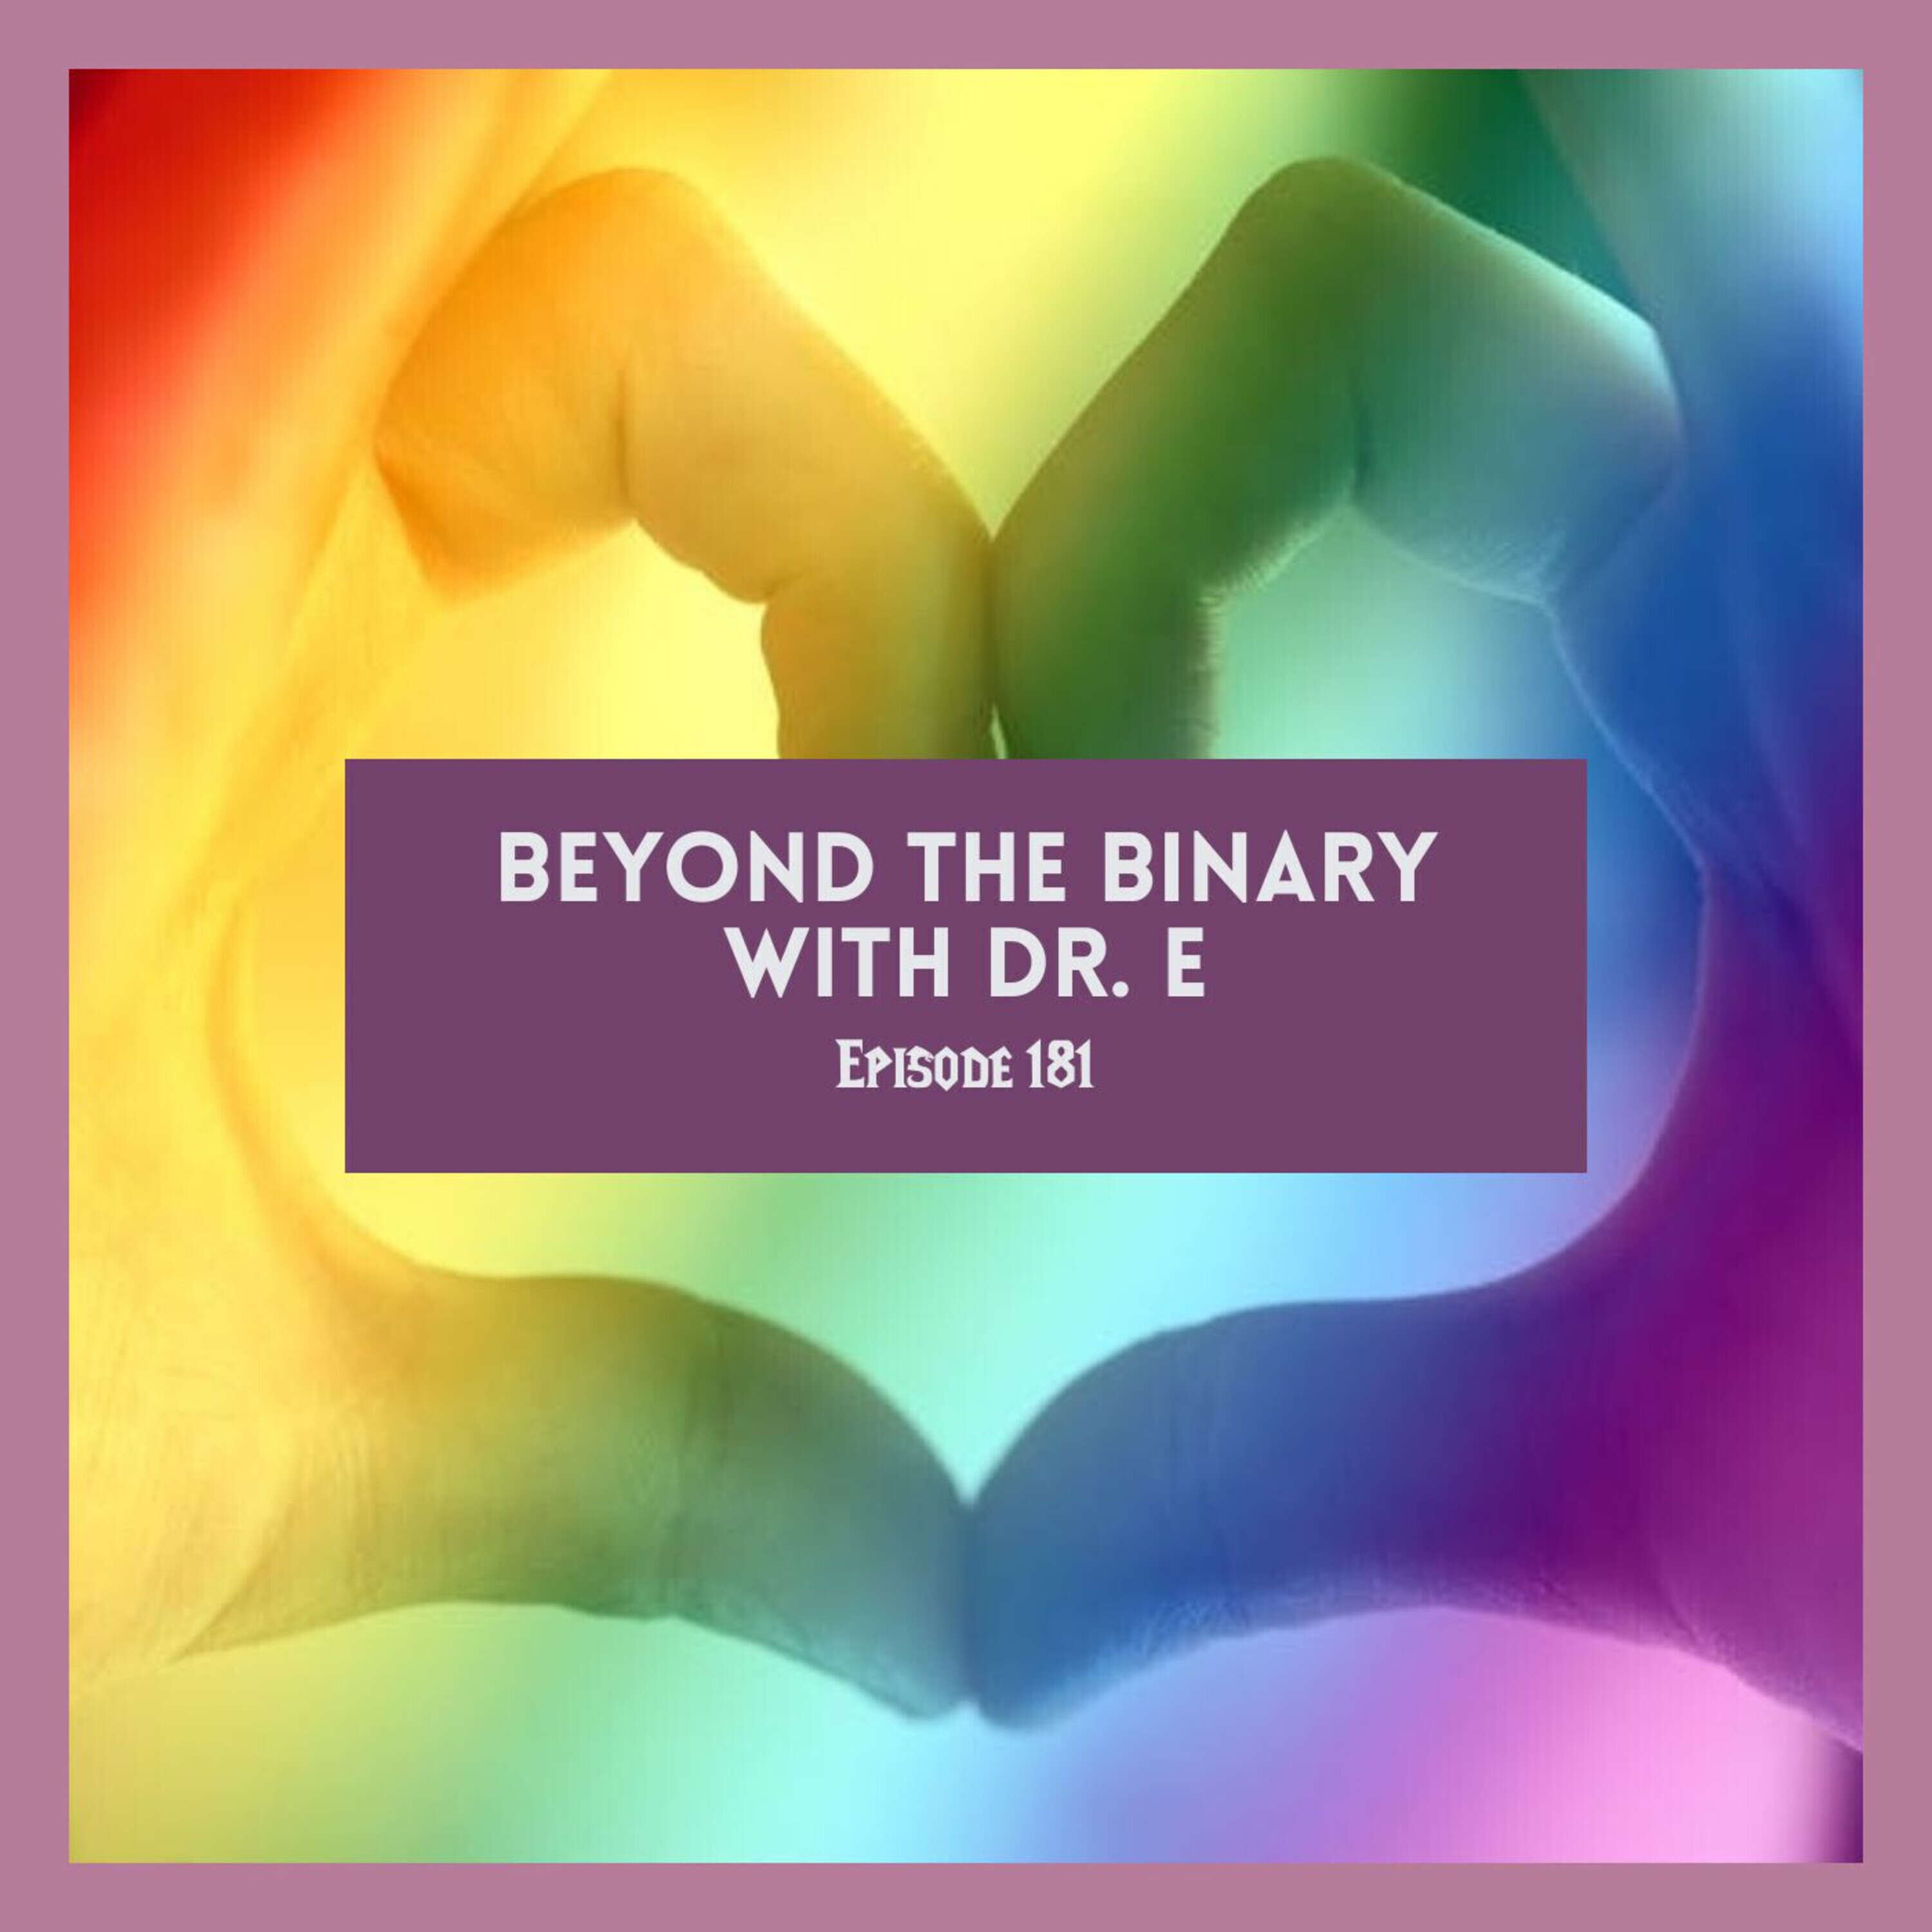 Beyond The Binary with Dr. E